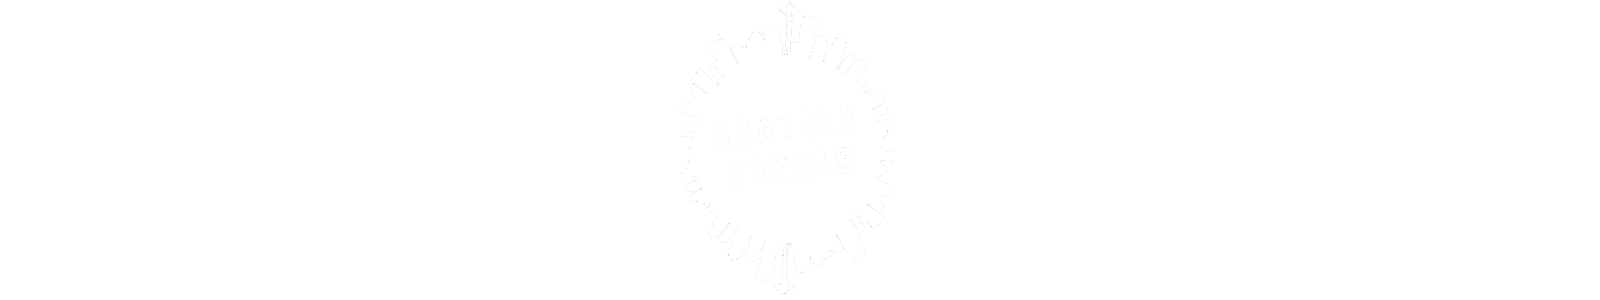 Seattle Events Facebook's Premiere Events Group - Business sponsor of The DJ Sessions